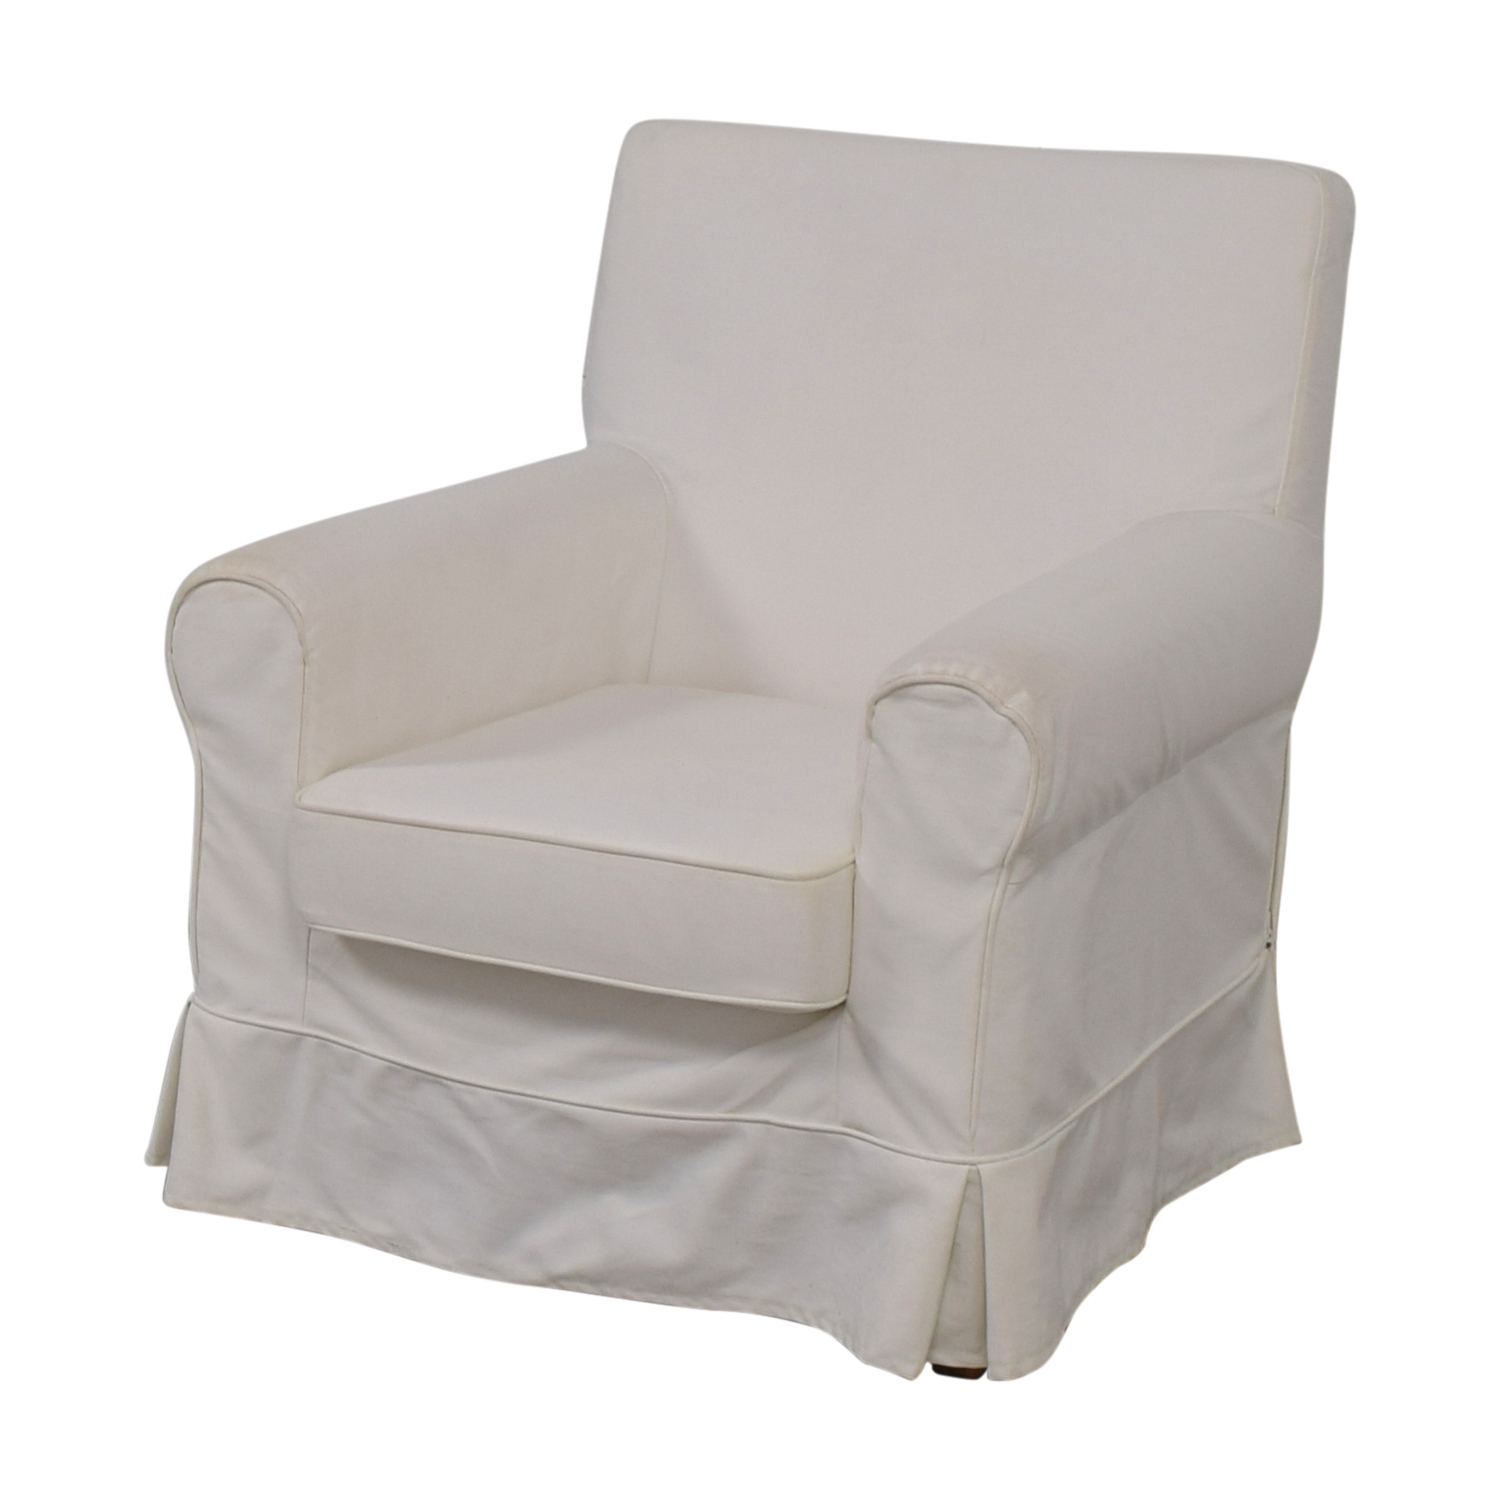 ikea accent chair covers staples hardwood mat 90 off eltorp jennylund white skirted